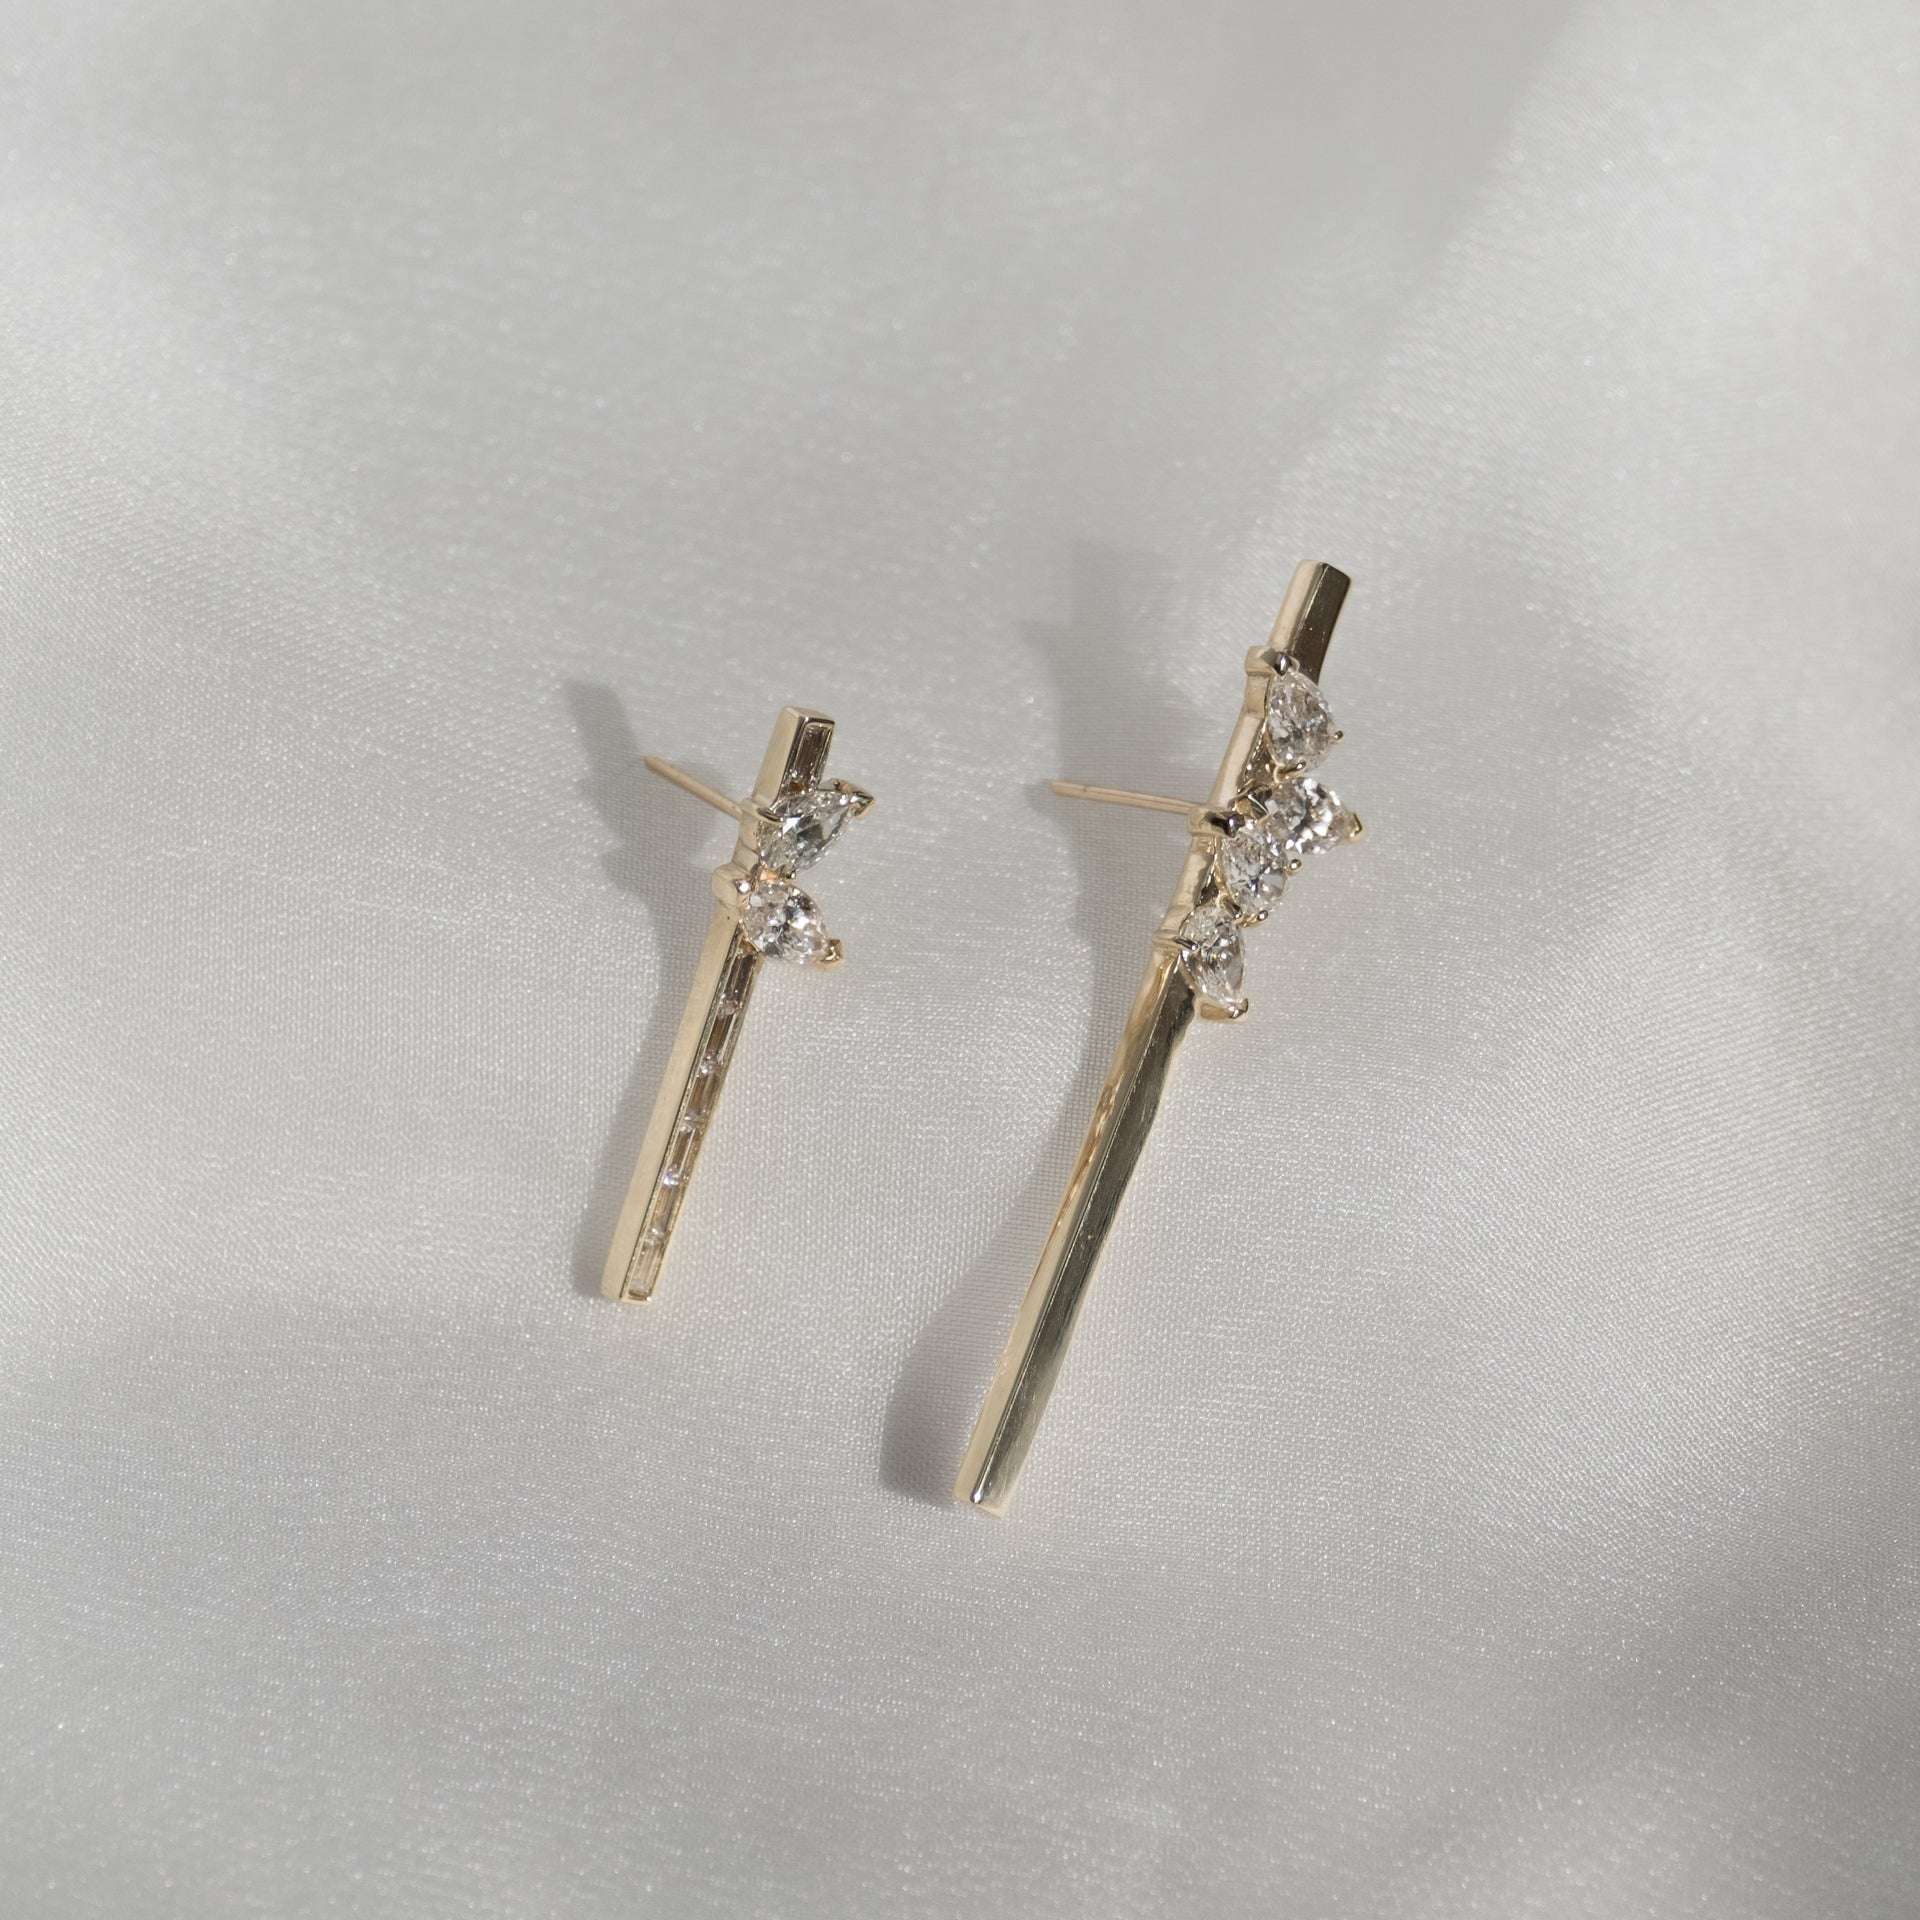 Grace Lee x Diamond Foundry Marquise + Pear Bar Earring